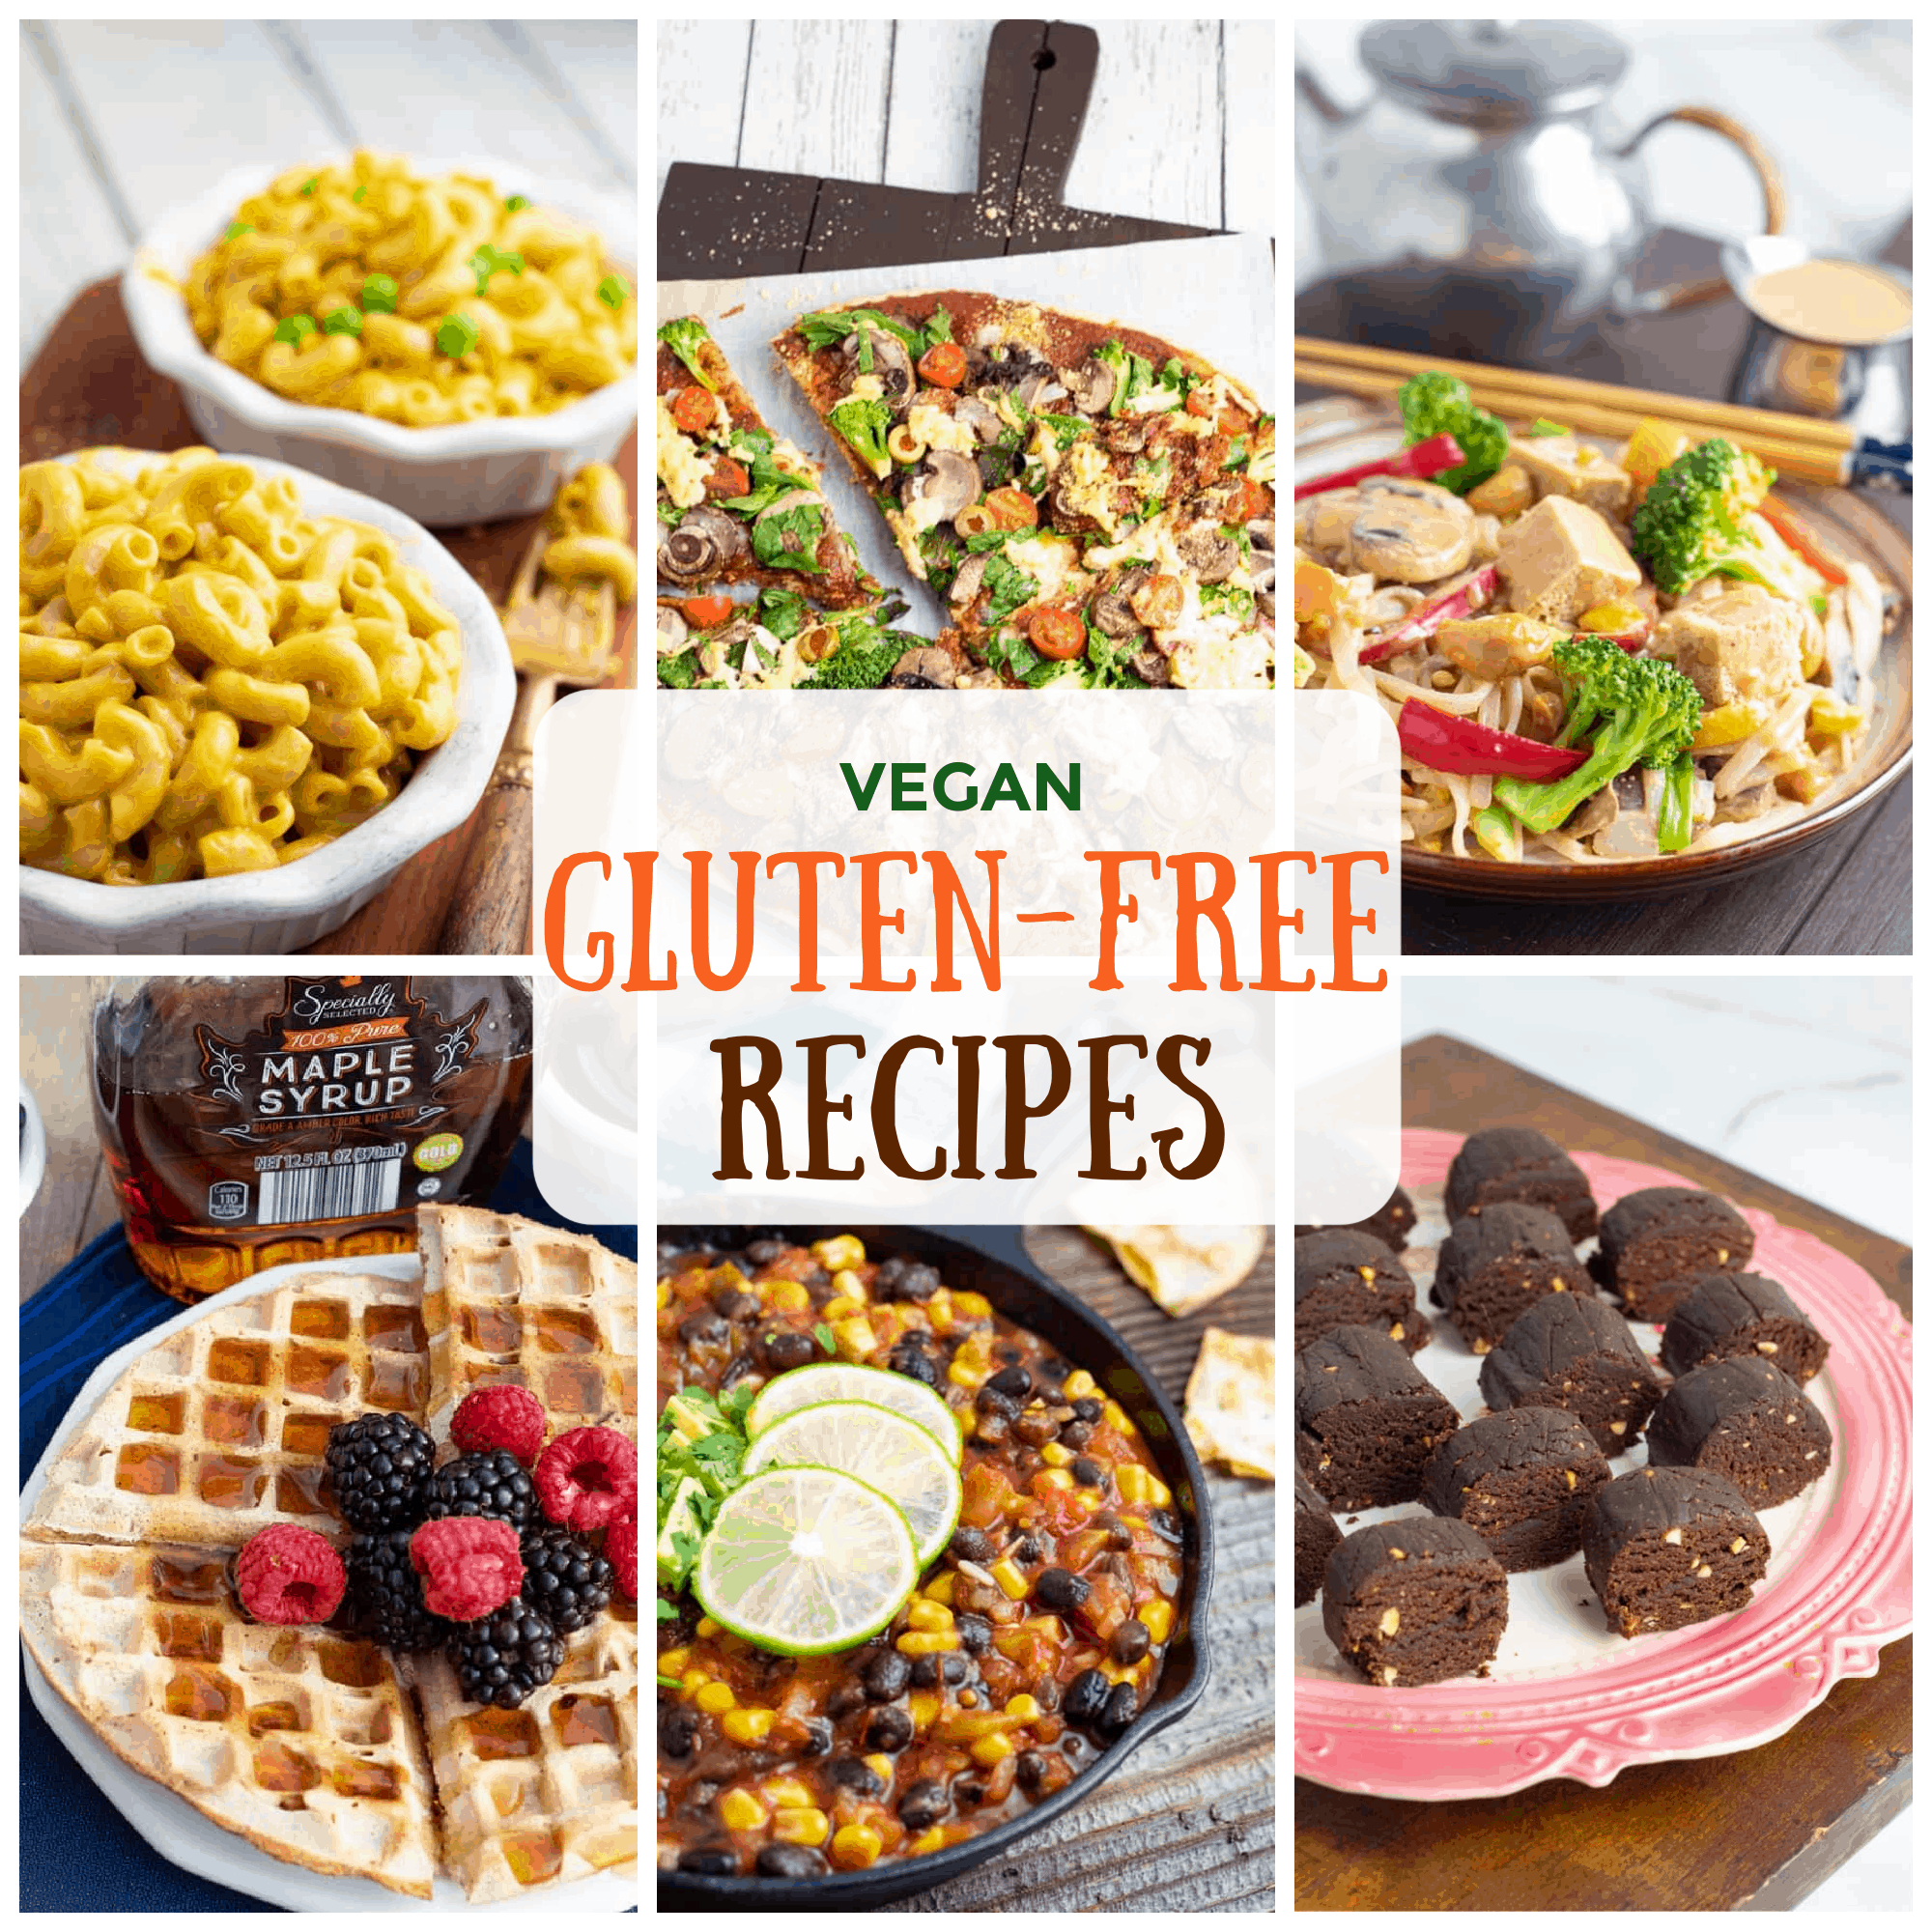 vegan gluten free recipes photo collage